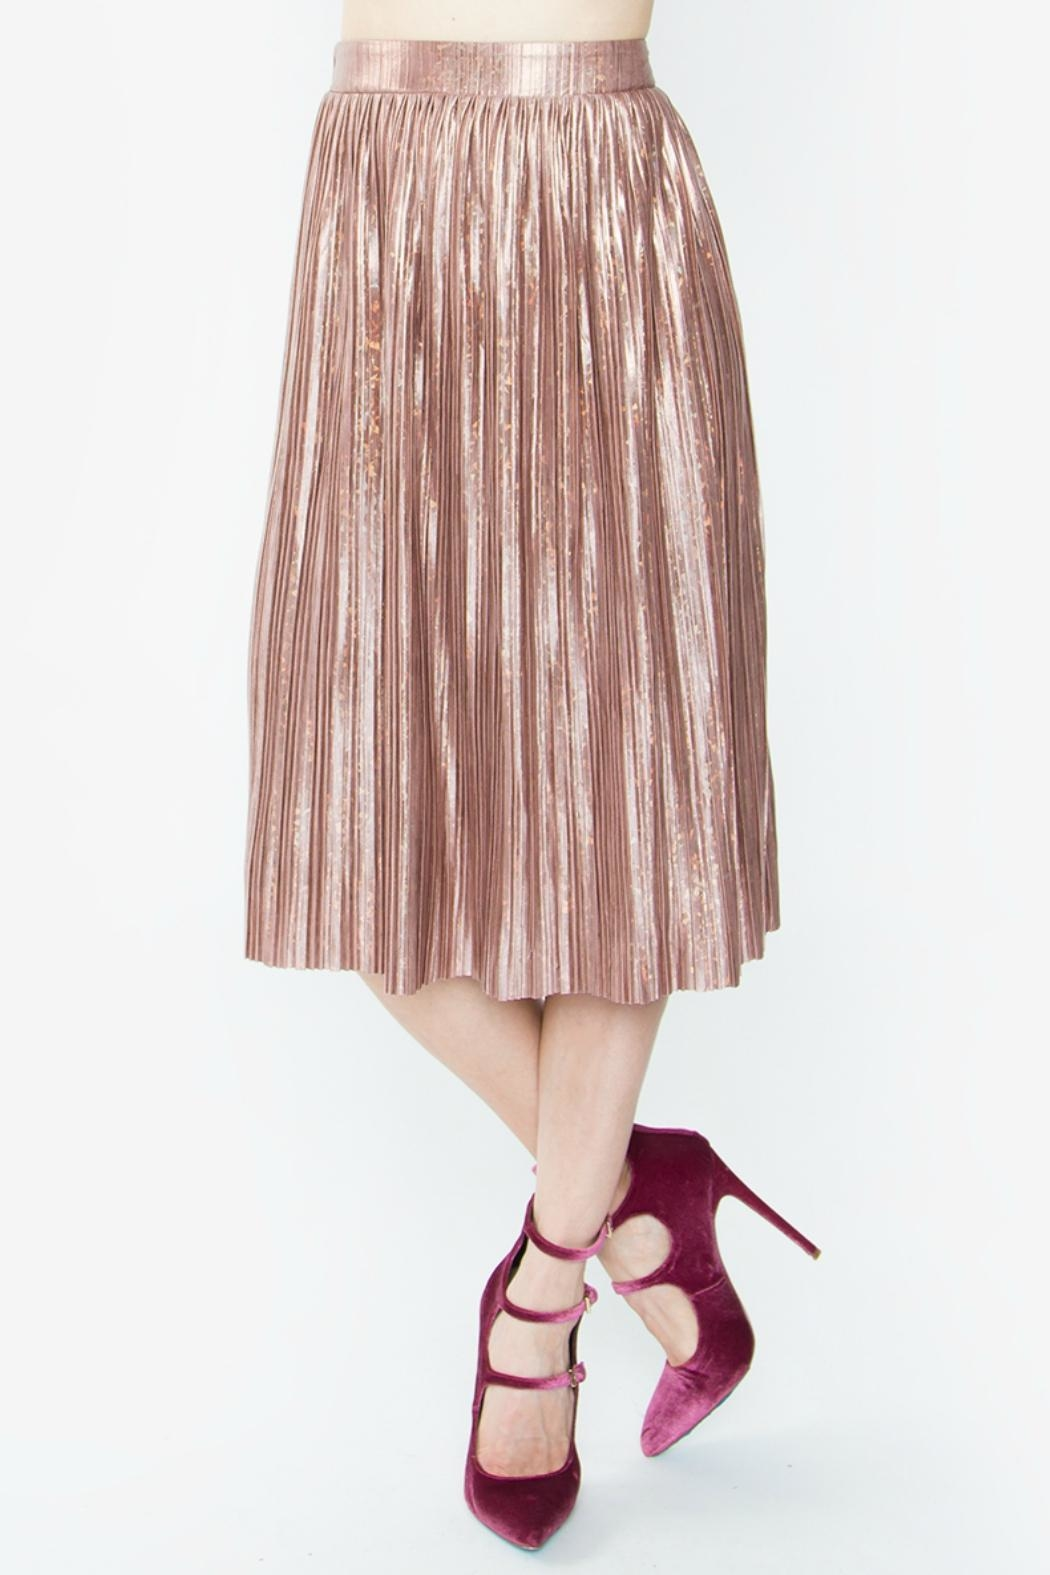 Sugar Lips Minori Pleated Metallic Skirt - Main Image